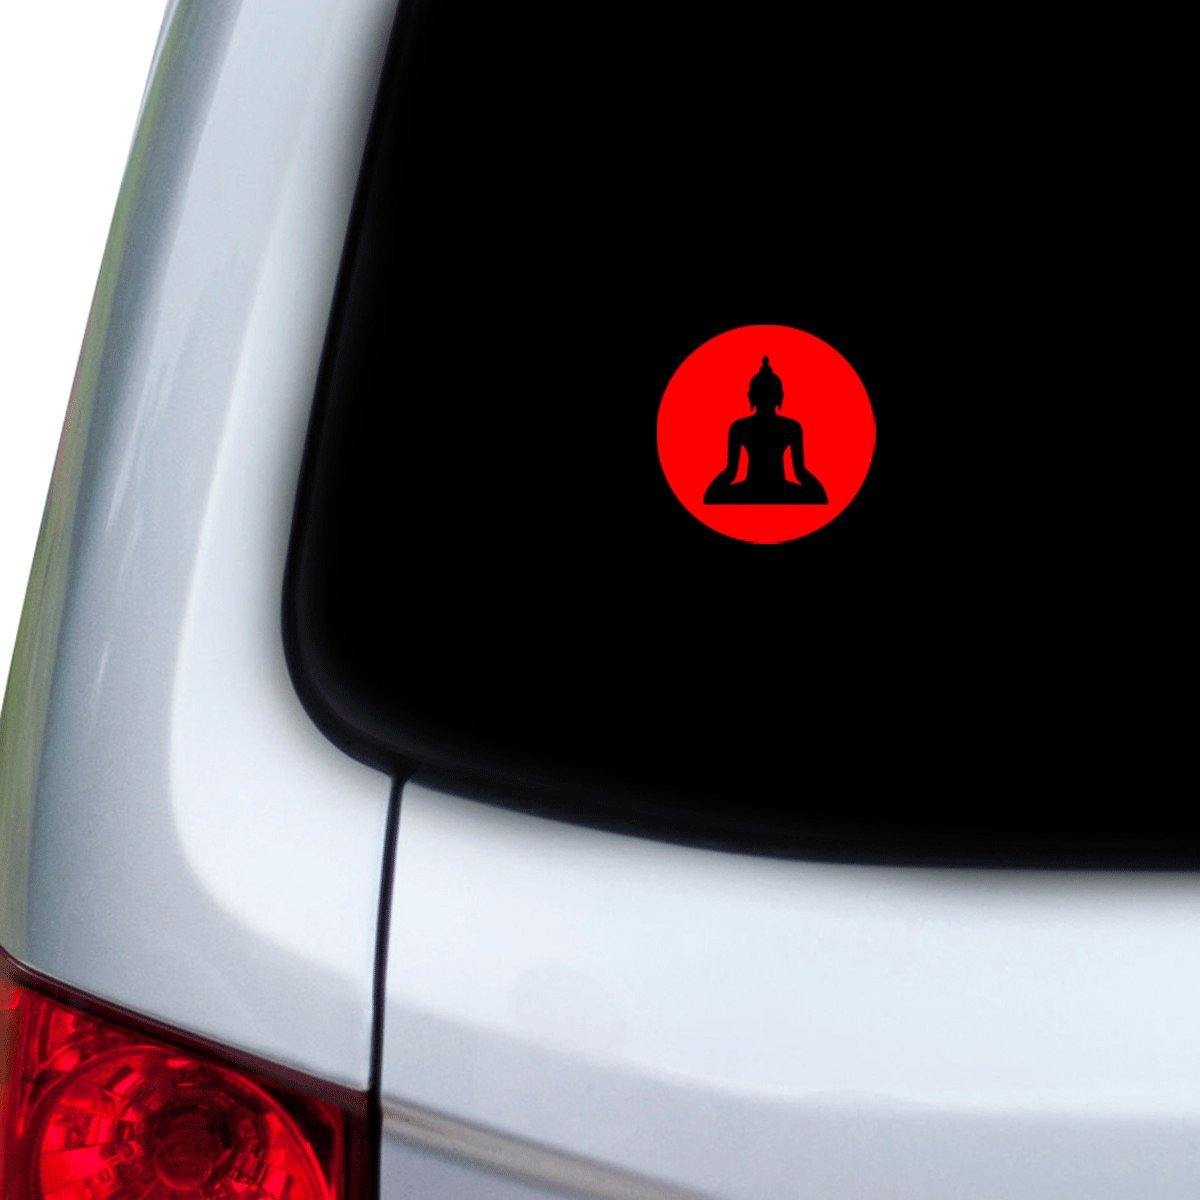 Hoods Doors StickAny Car and Auto Decal Series Buddah Circle Sticker for Windows Red